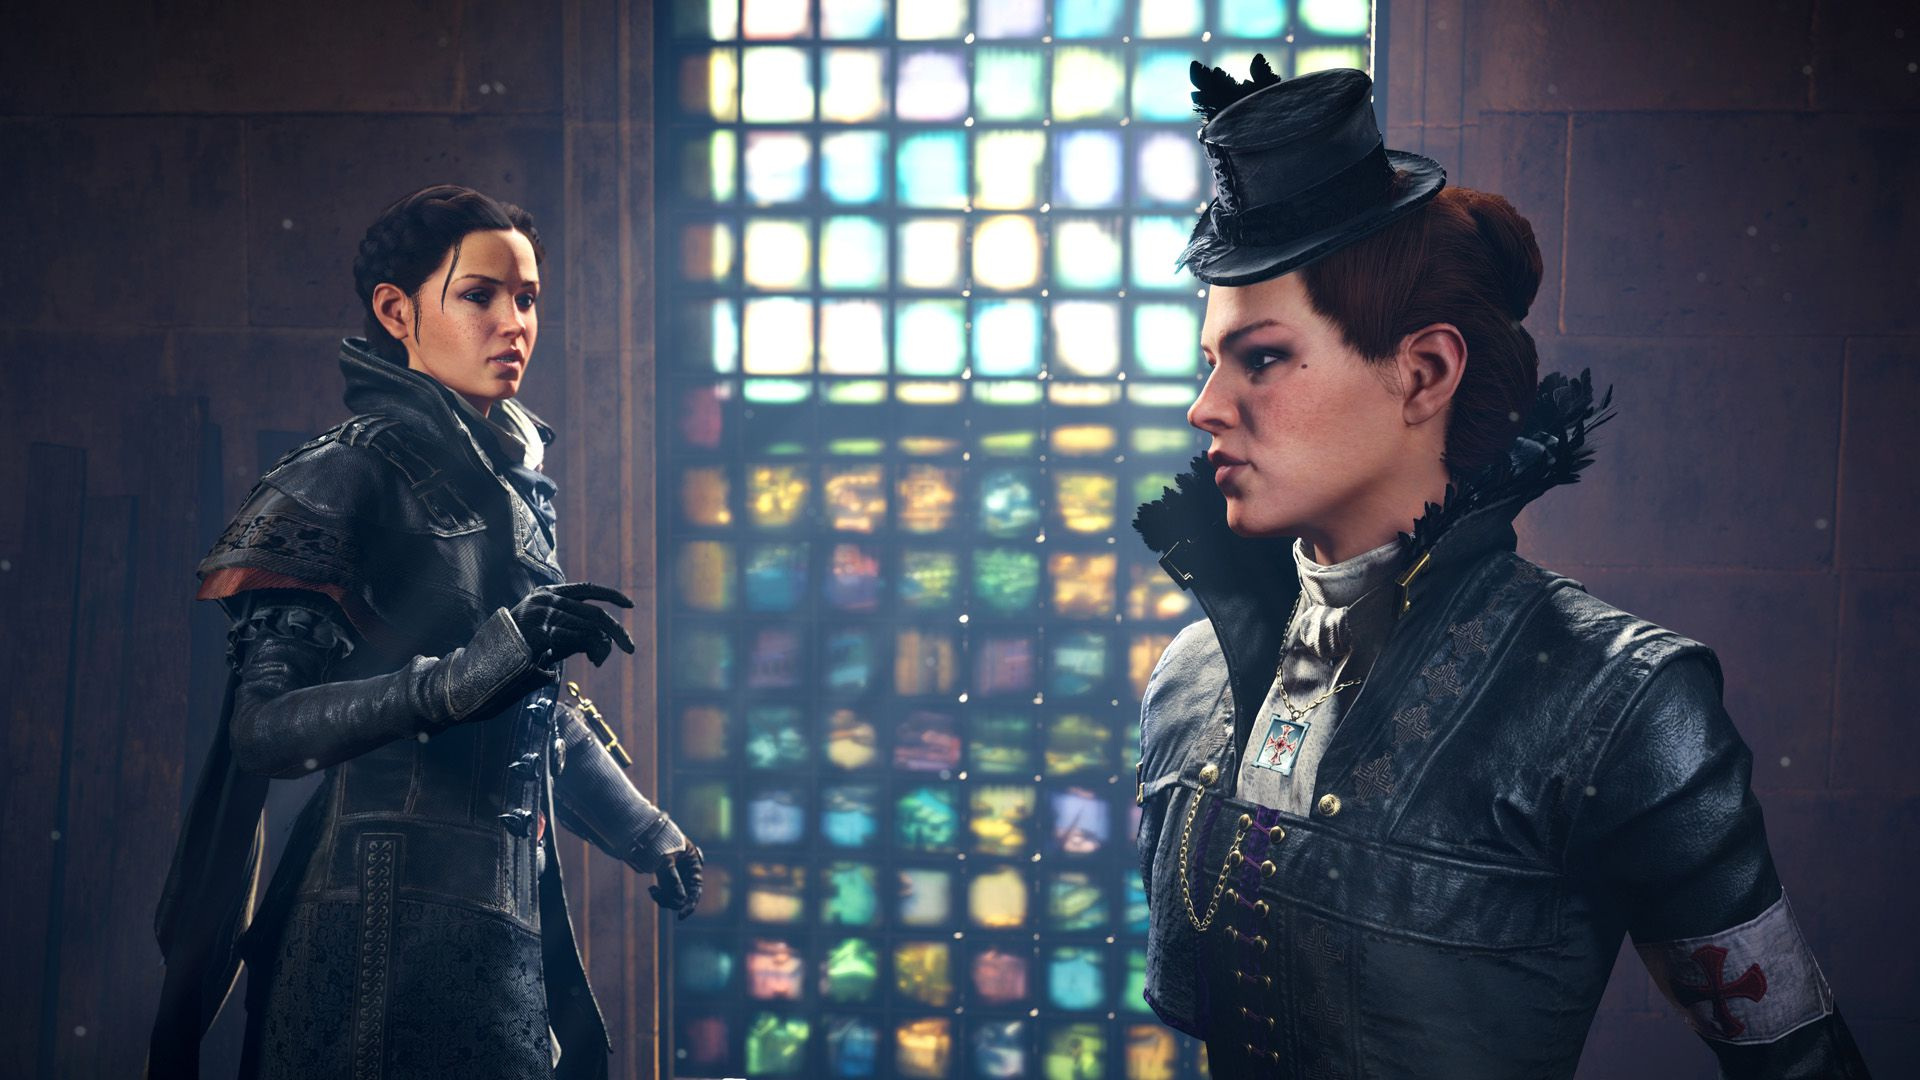 Assassin's Creed Syndicate tips 3